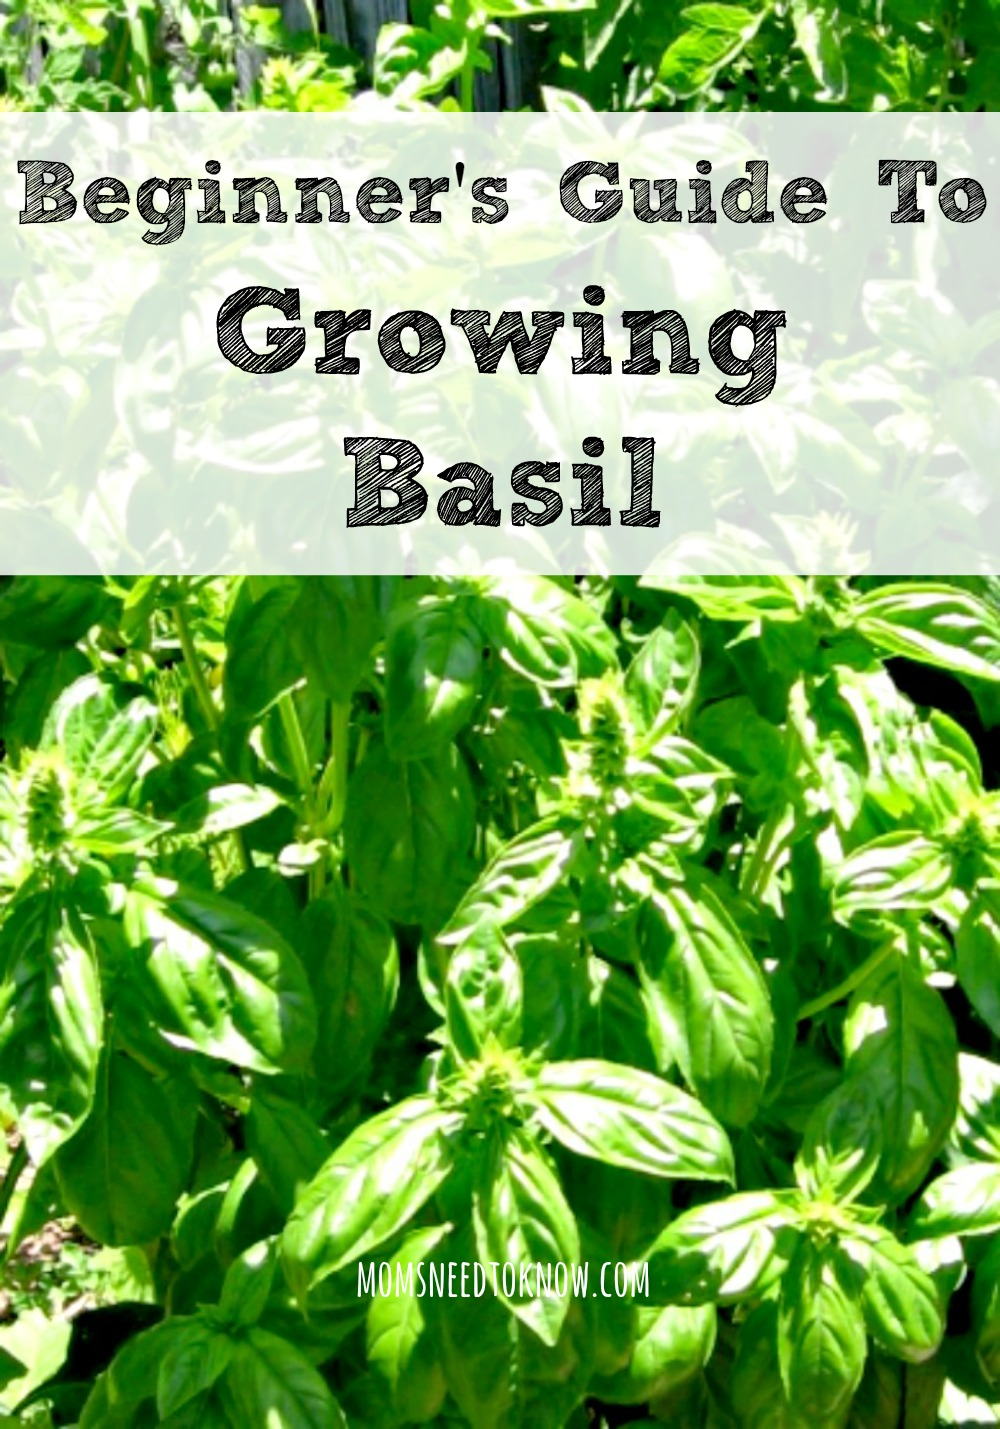 Beginner's Guide To Growing Basil